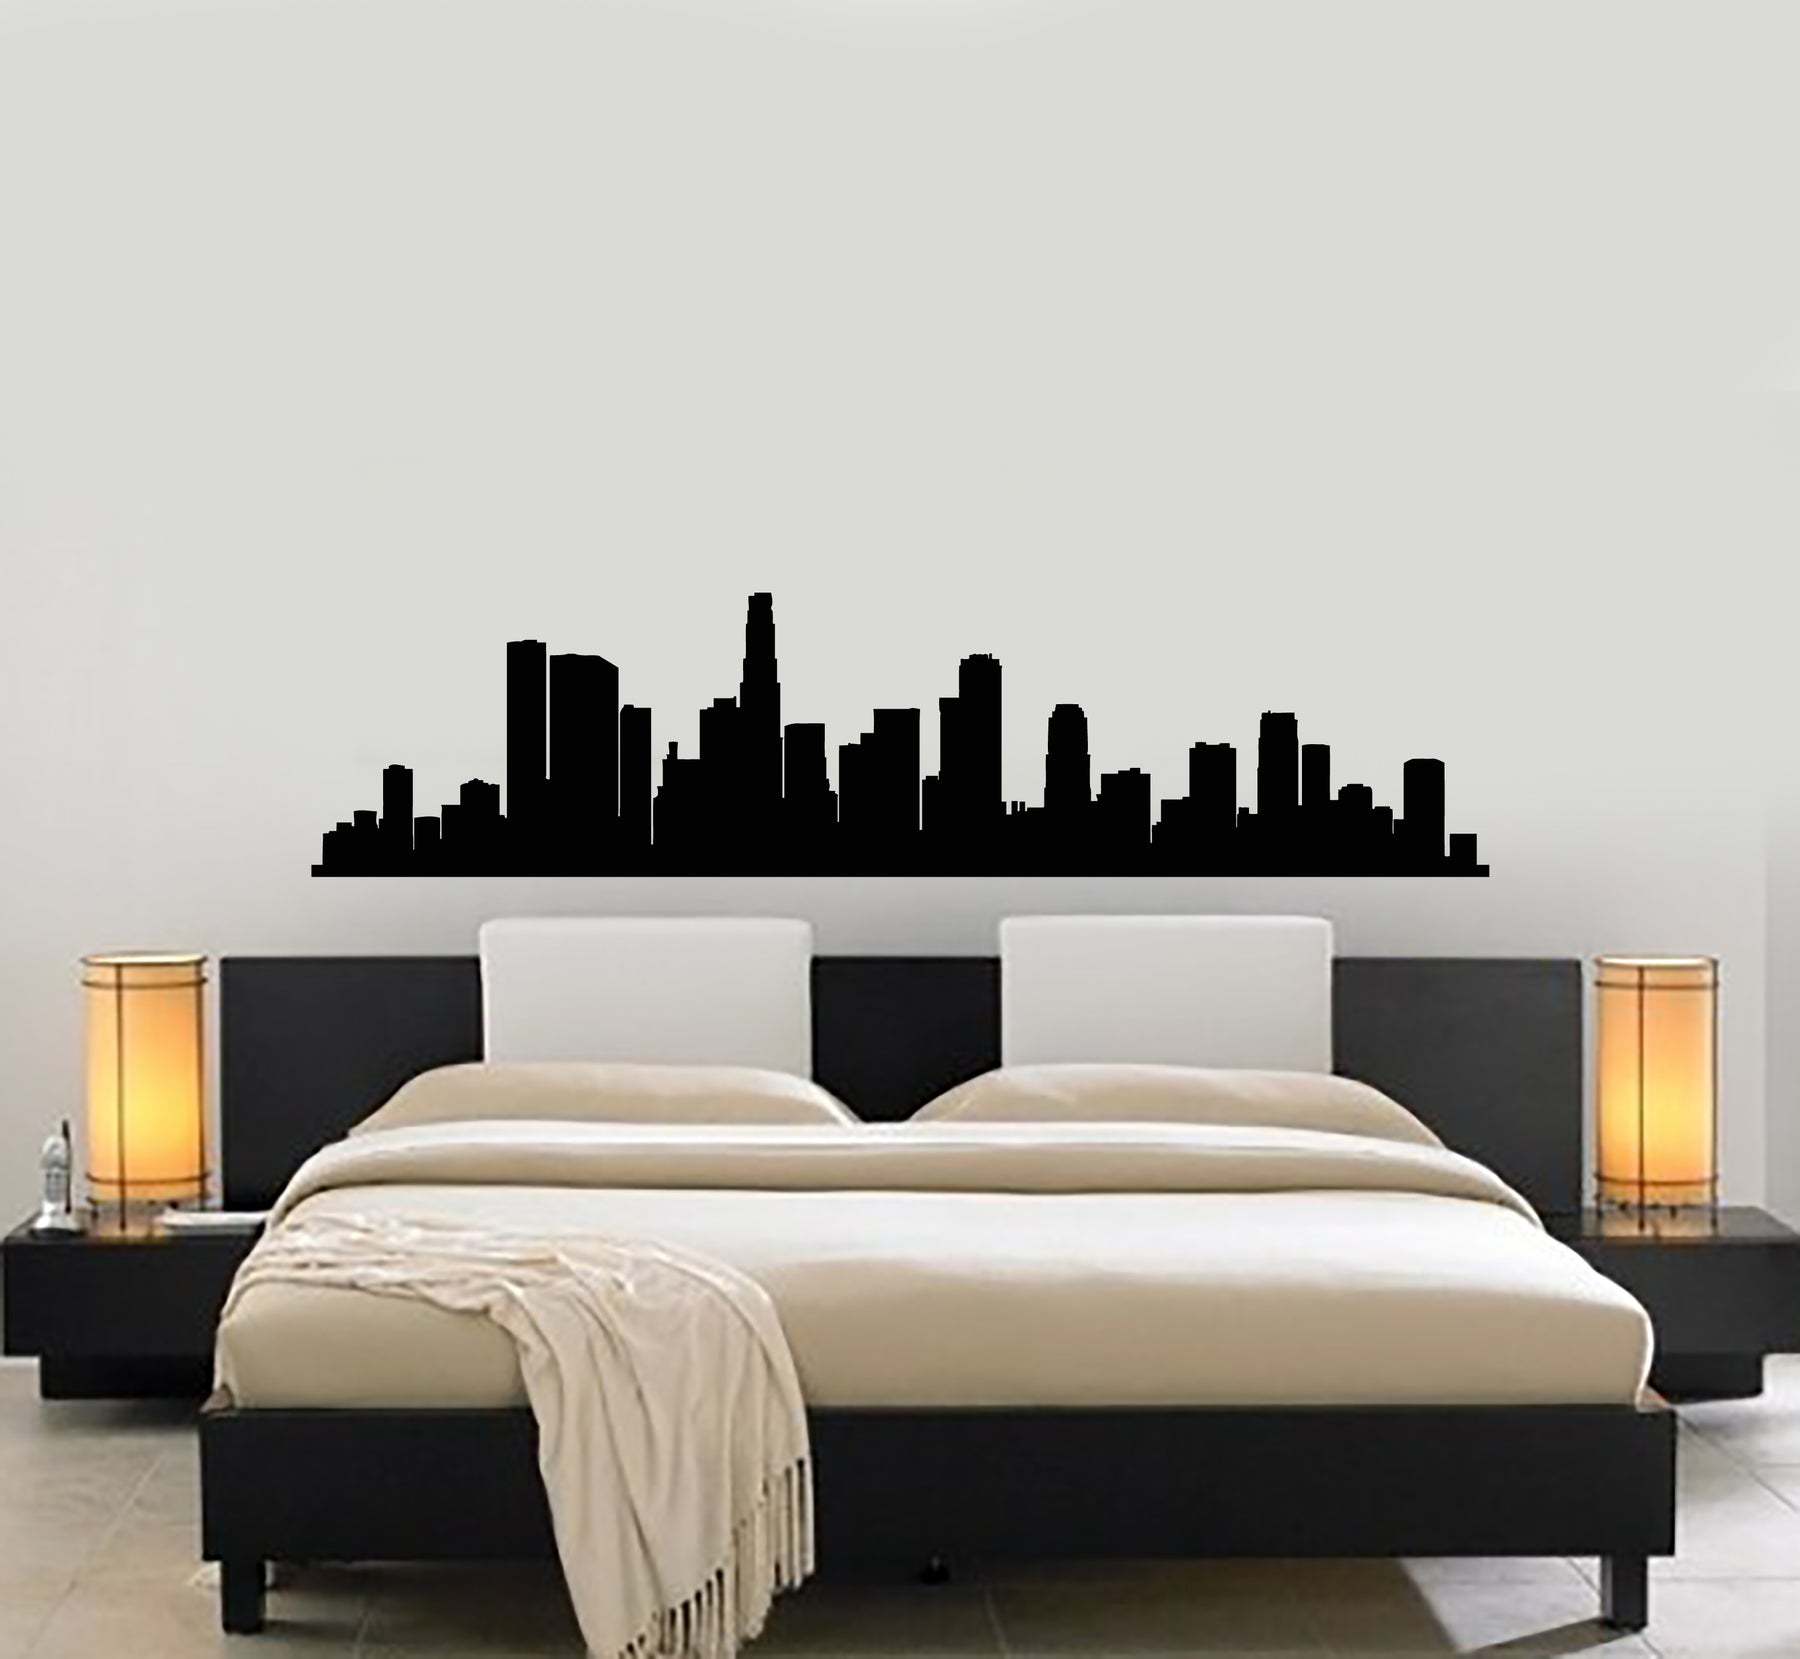 Vinyl Wall Decal Skyscraper Skyline City Silhouette Room Decoration St Wallstickers4you